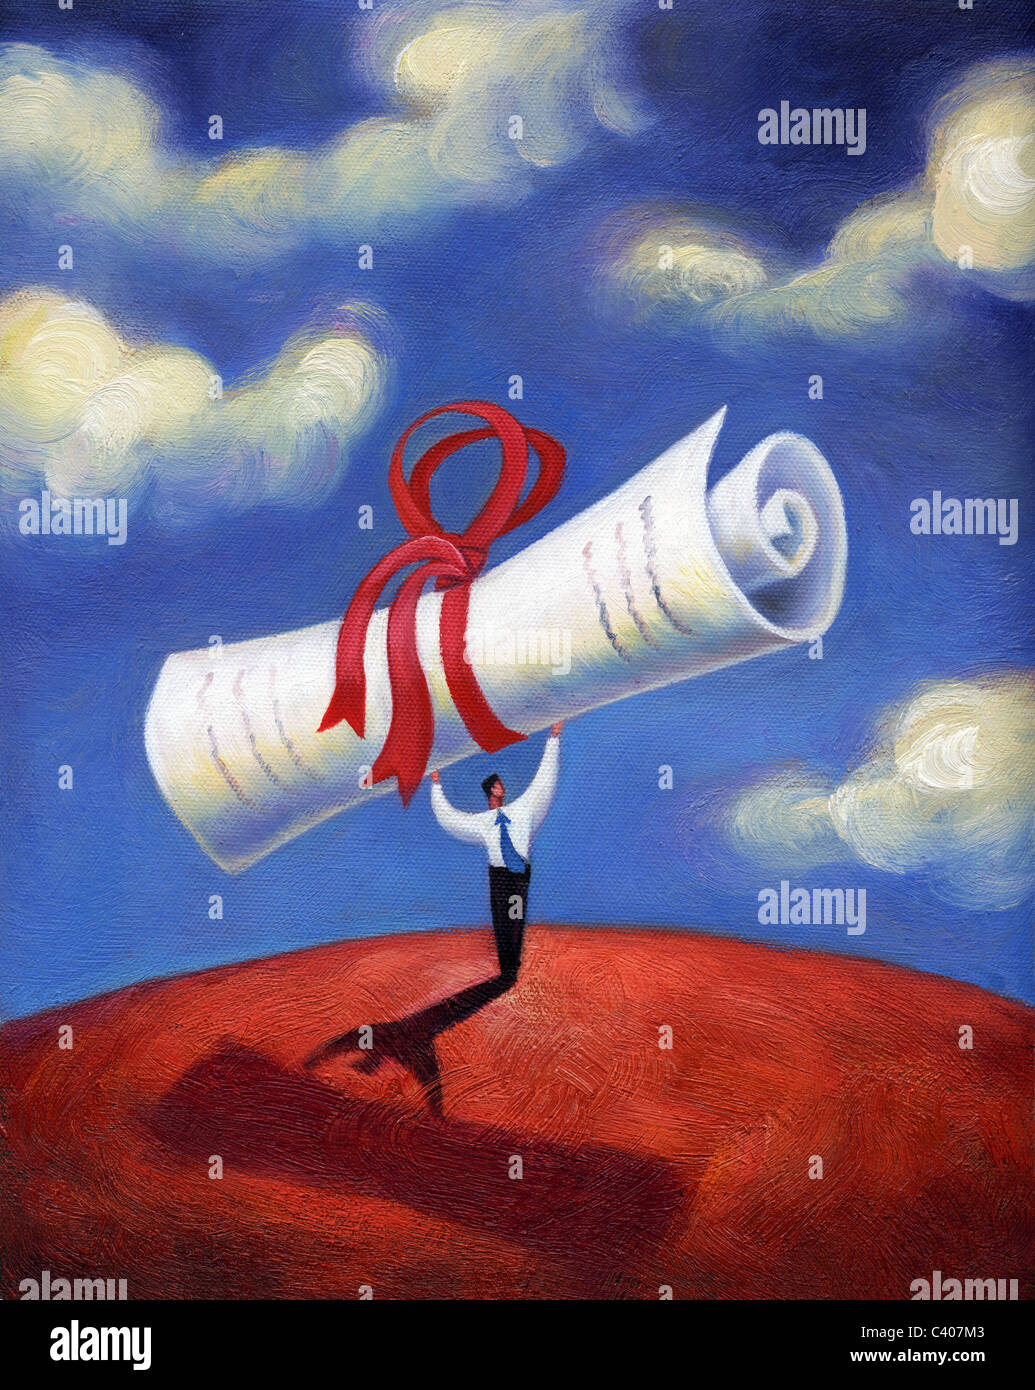 Illustration of a man holding a big scroll - Stock Image